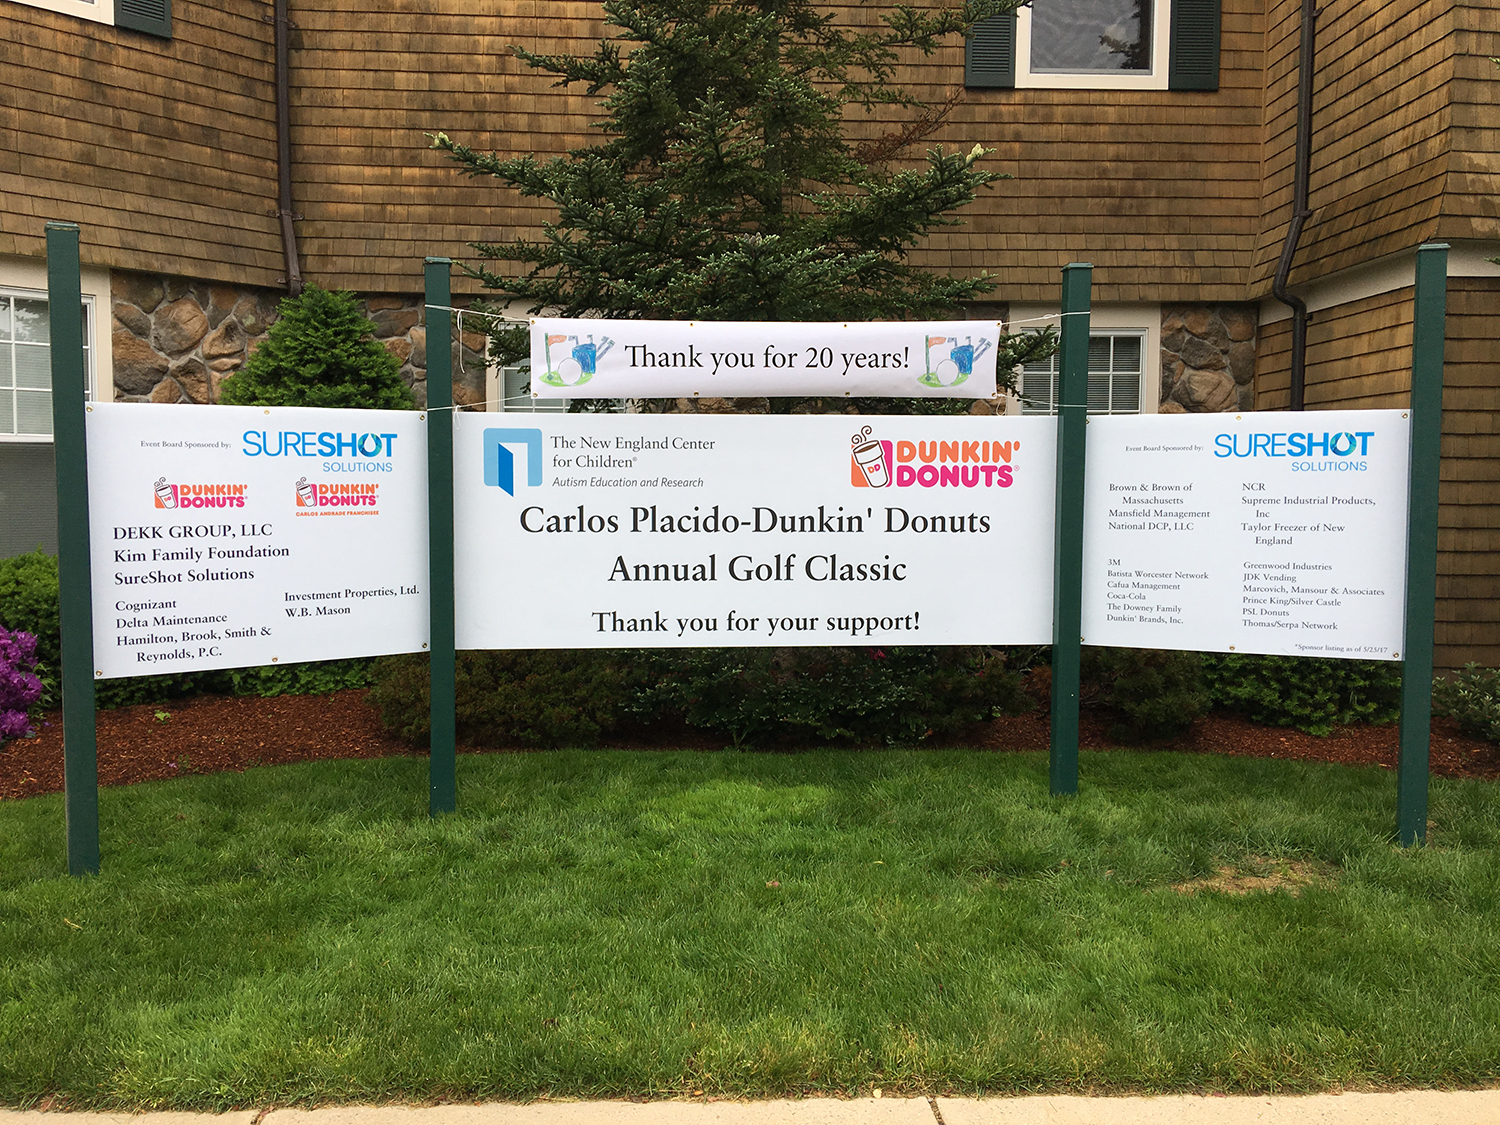 Thrifty Dunkin Carlos Placido Donuts Golf Classic New England Classic Property Management Reviews Classic Property Management East Longmeadow Ma houzz 01 Classic Property Management